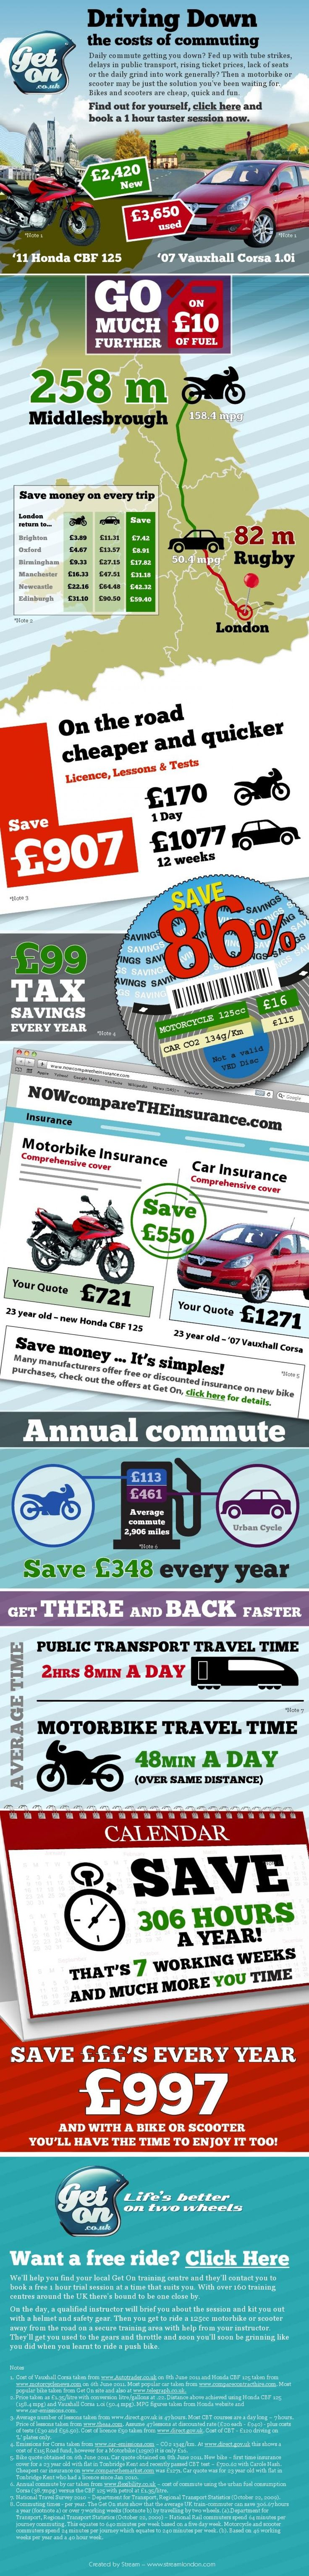 Car v motorbike the true cost of commuting infographic